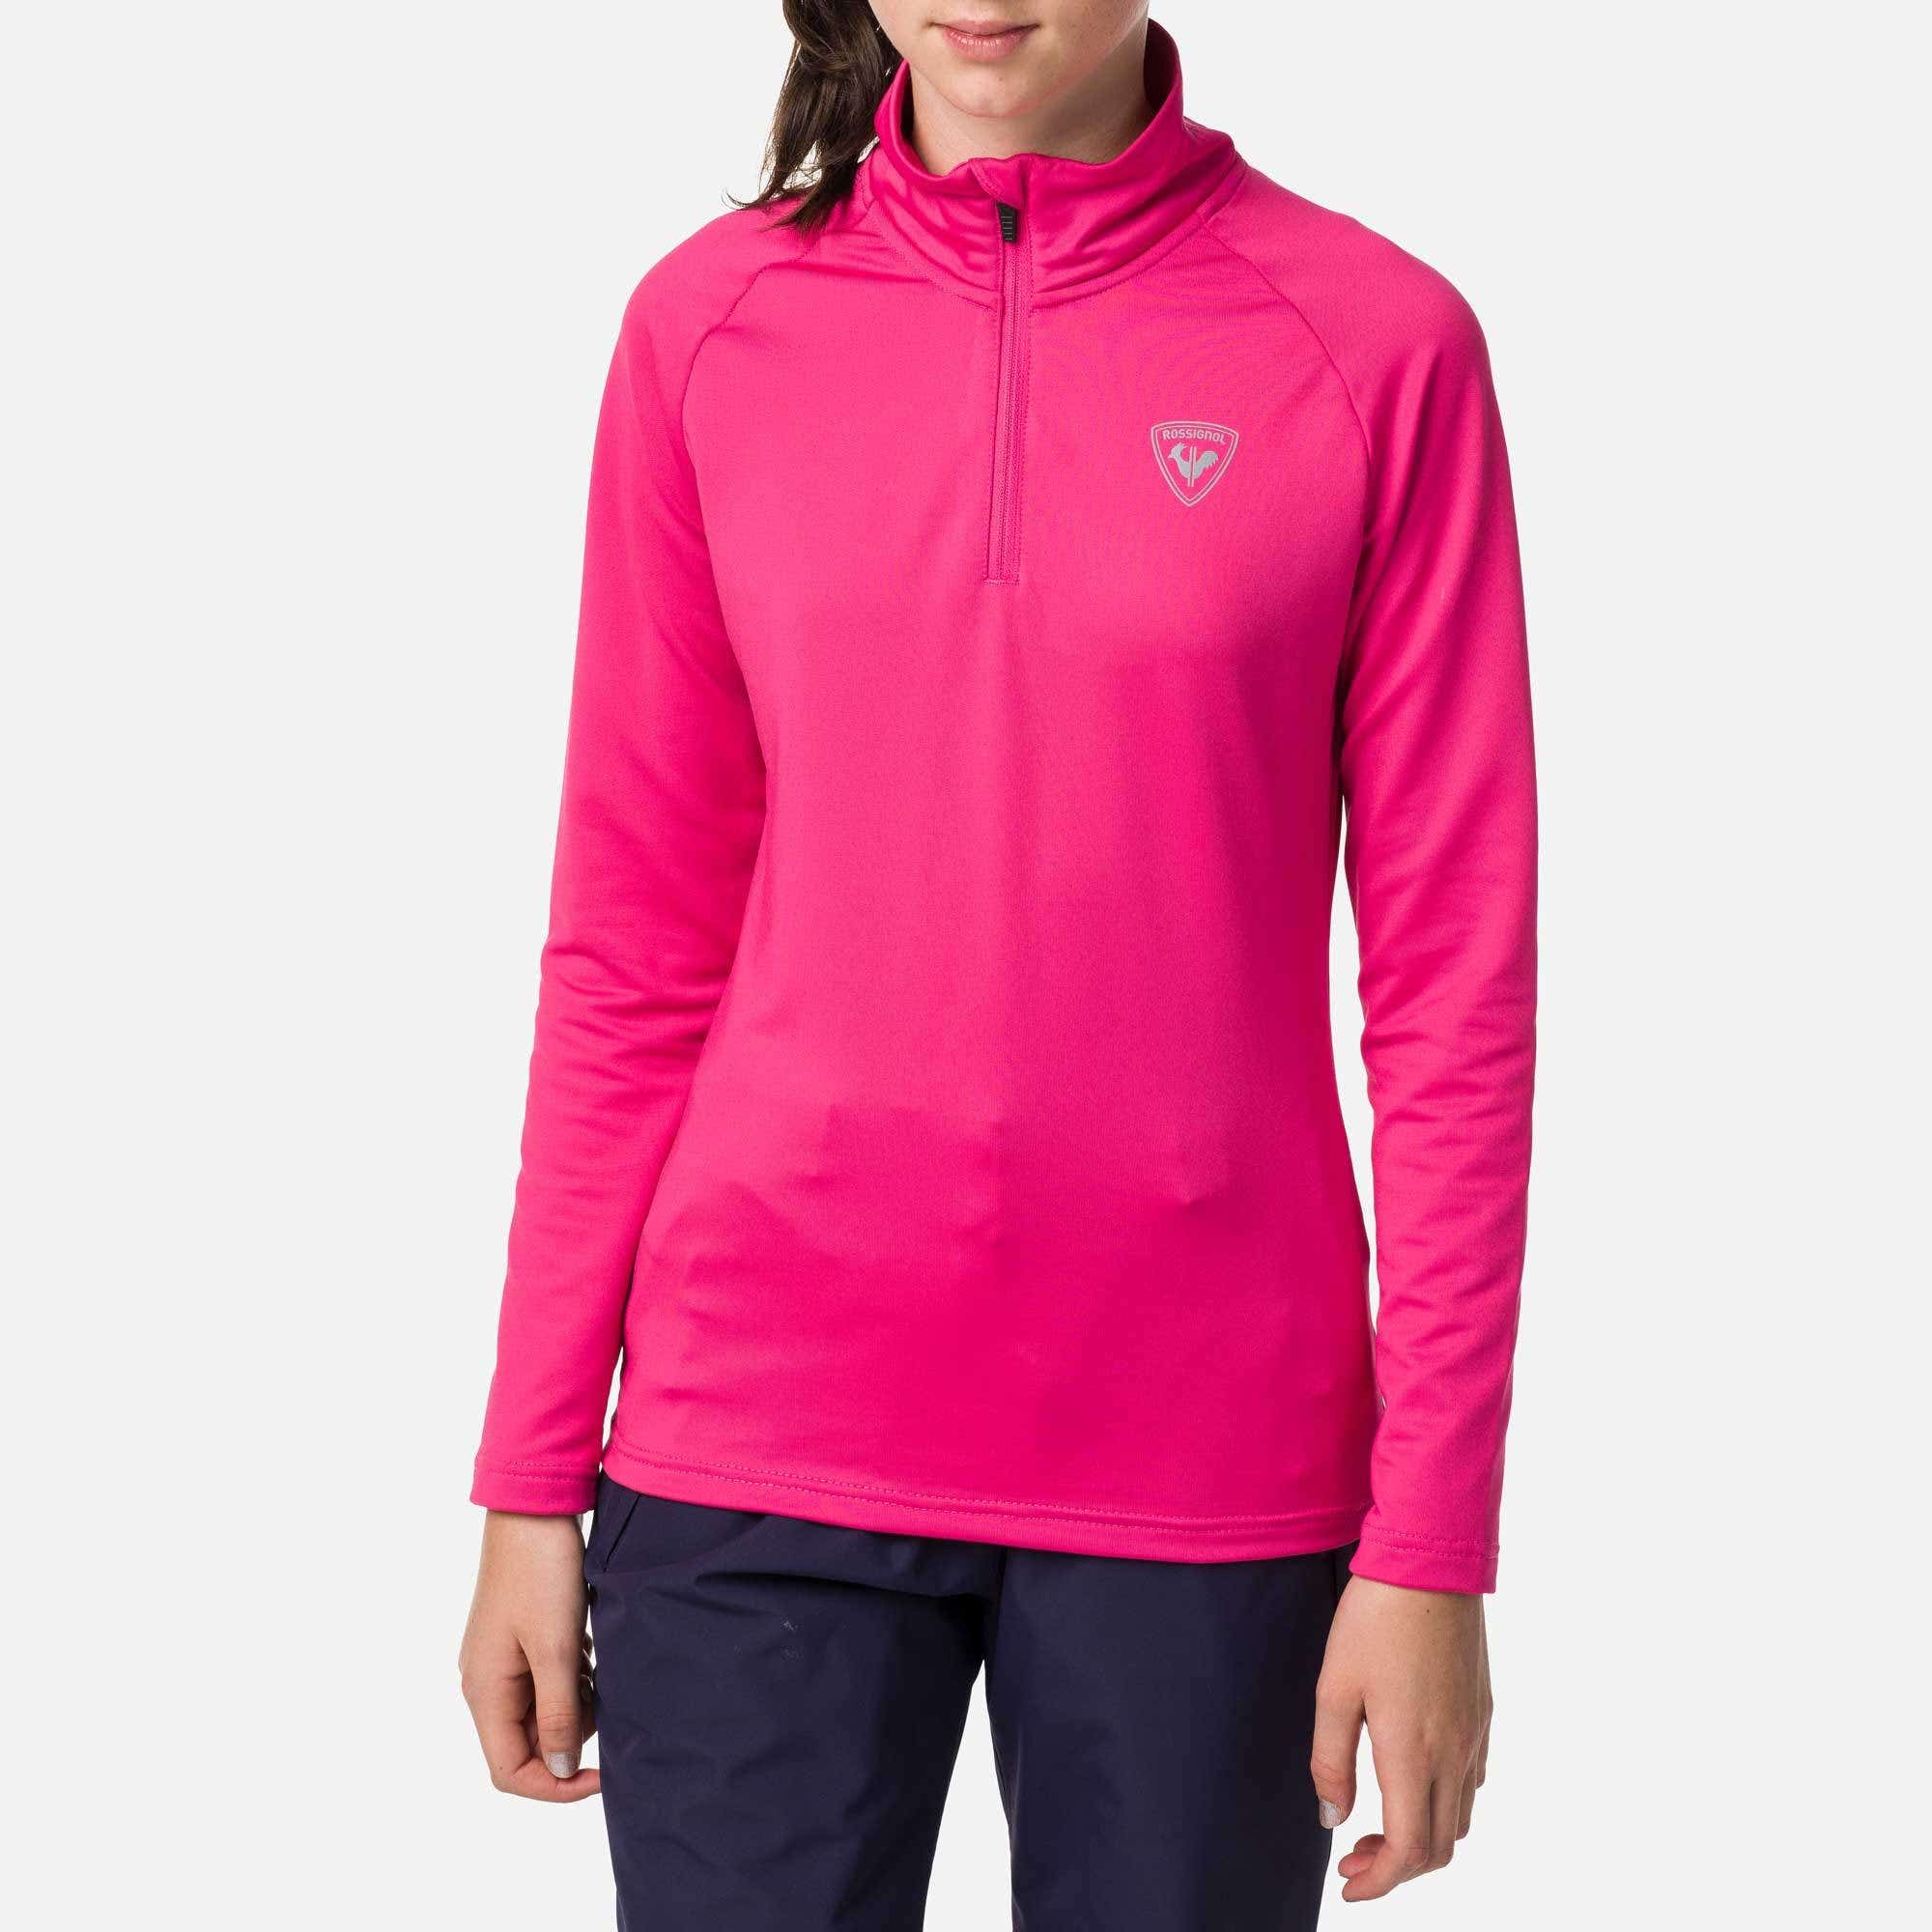 Image of Girl's 1/2 Zip Warm Stretch Layer